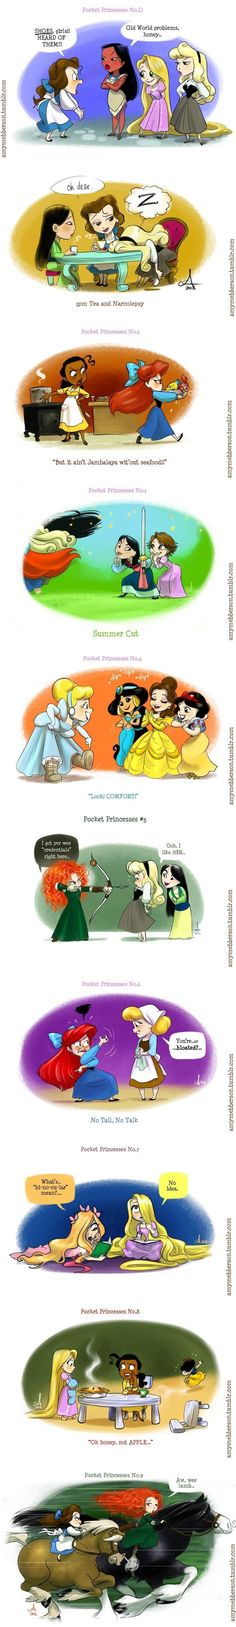 "Disney princesses.... Totally read all of those in Merida's voice. Especially the ""wee lamb"""